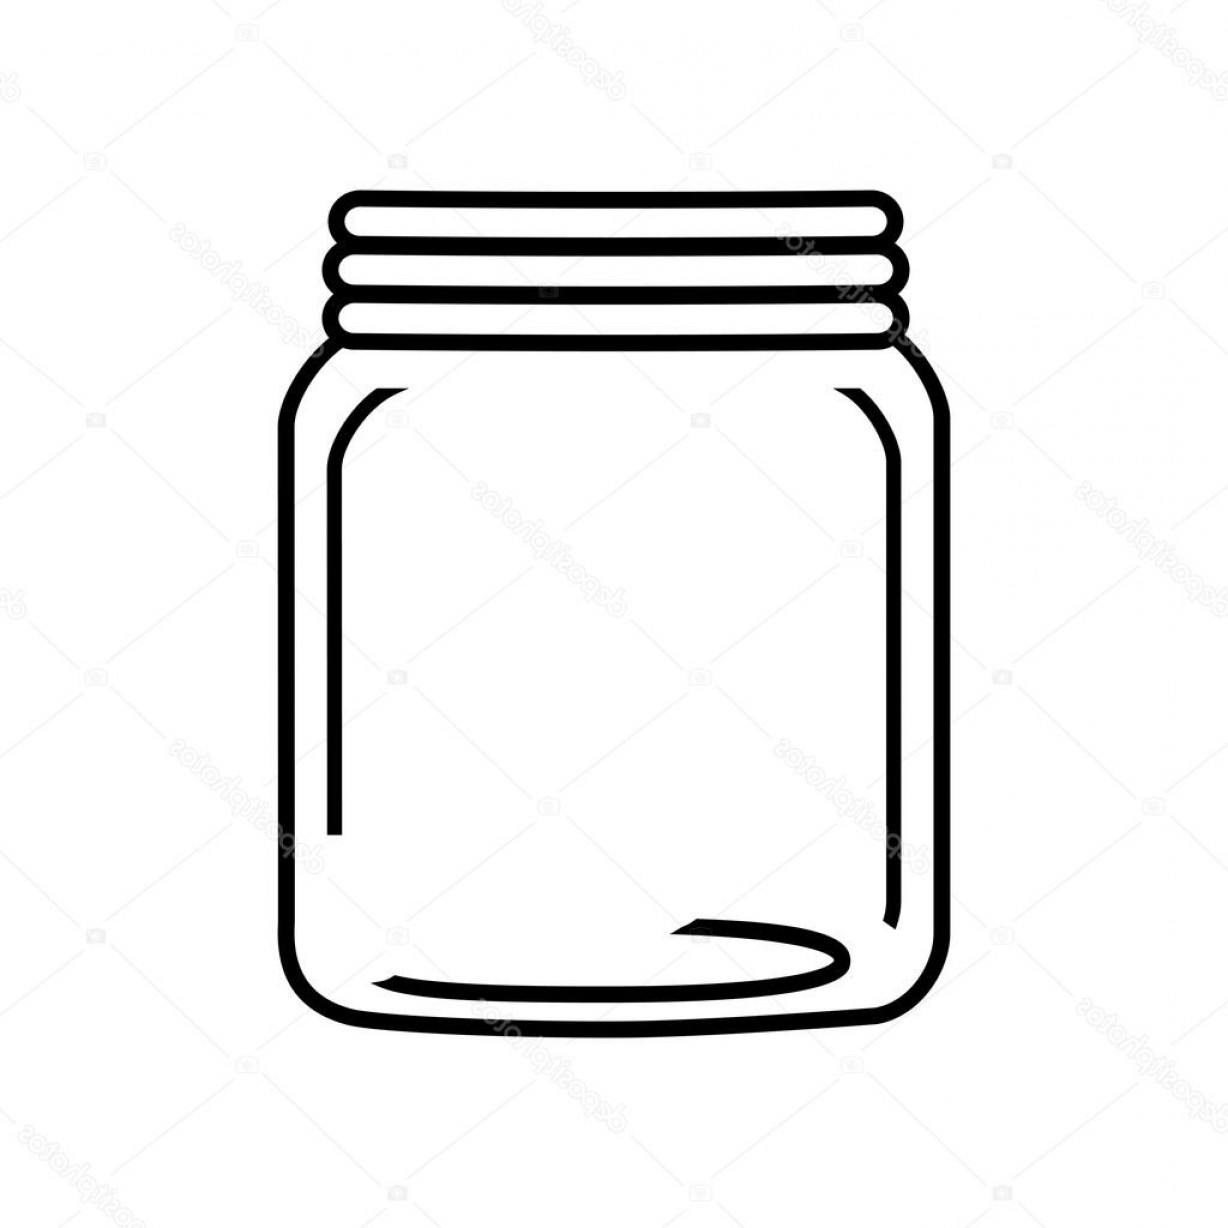 Mason Jar Outline Vector: Stock Illustration Mason Jar Glass Rustic Can